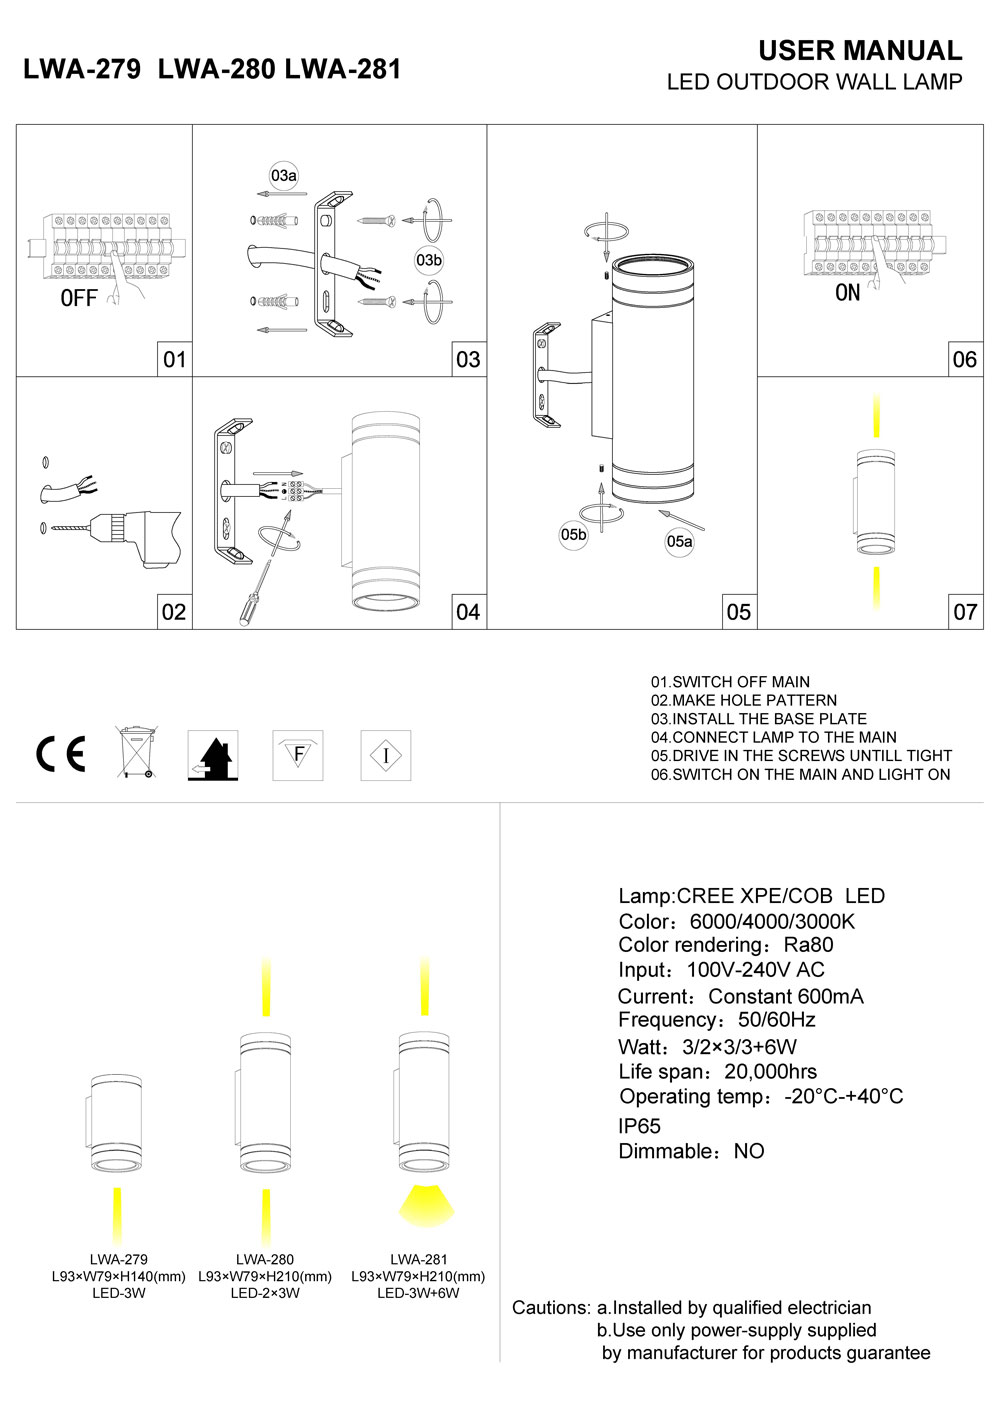 LWA-279--LWA-280-LWA-281 black garden wall light installation guide